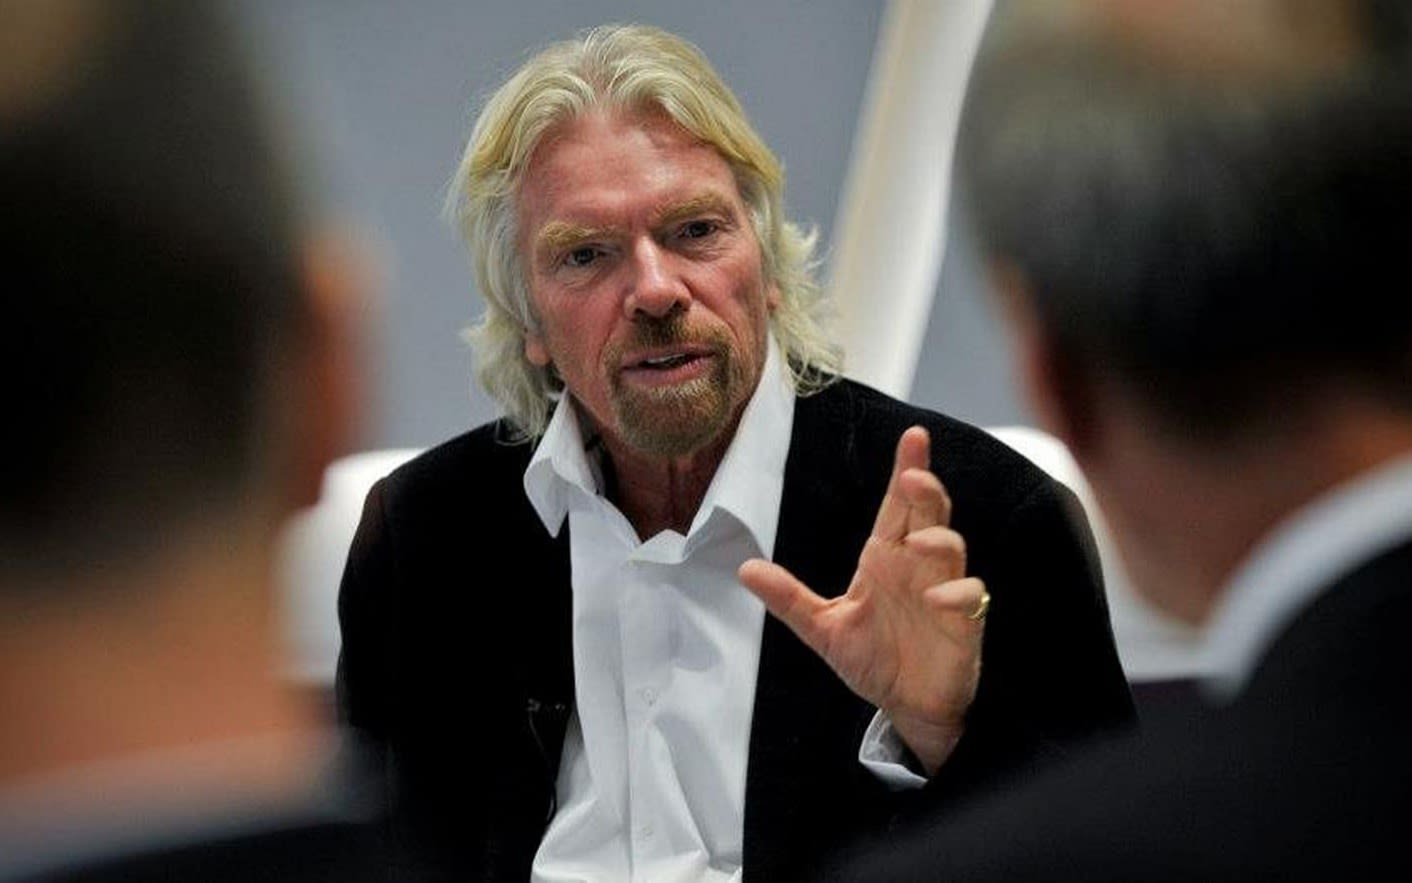 Richard Branson speaking to two men who have their backs to the camera